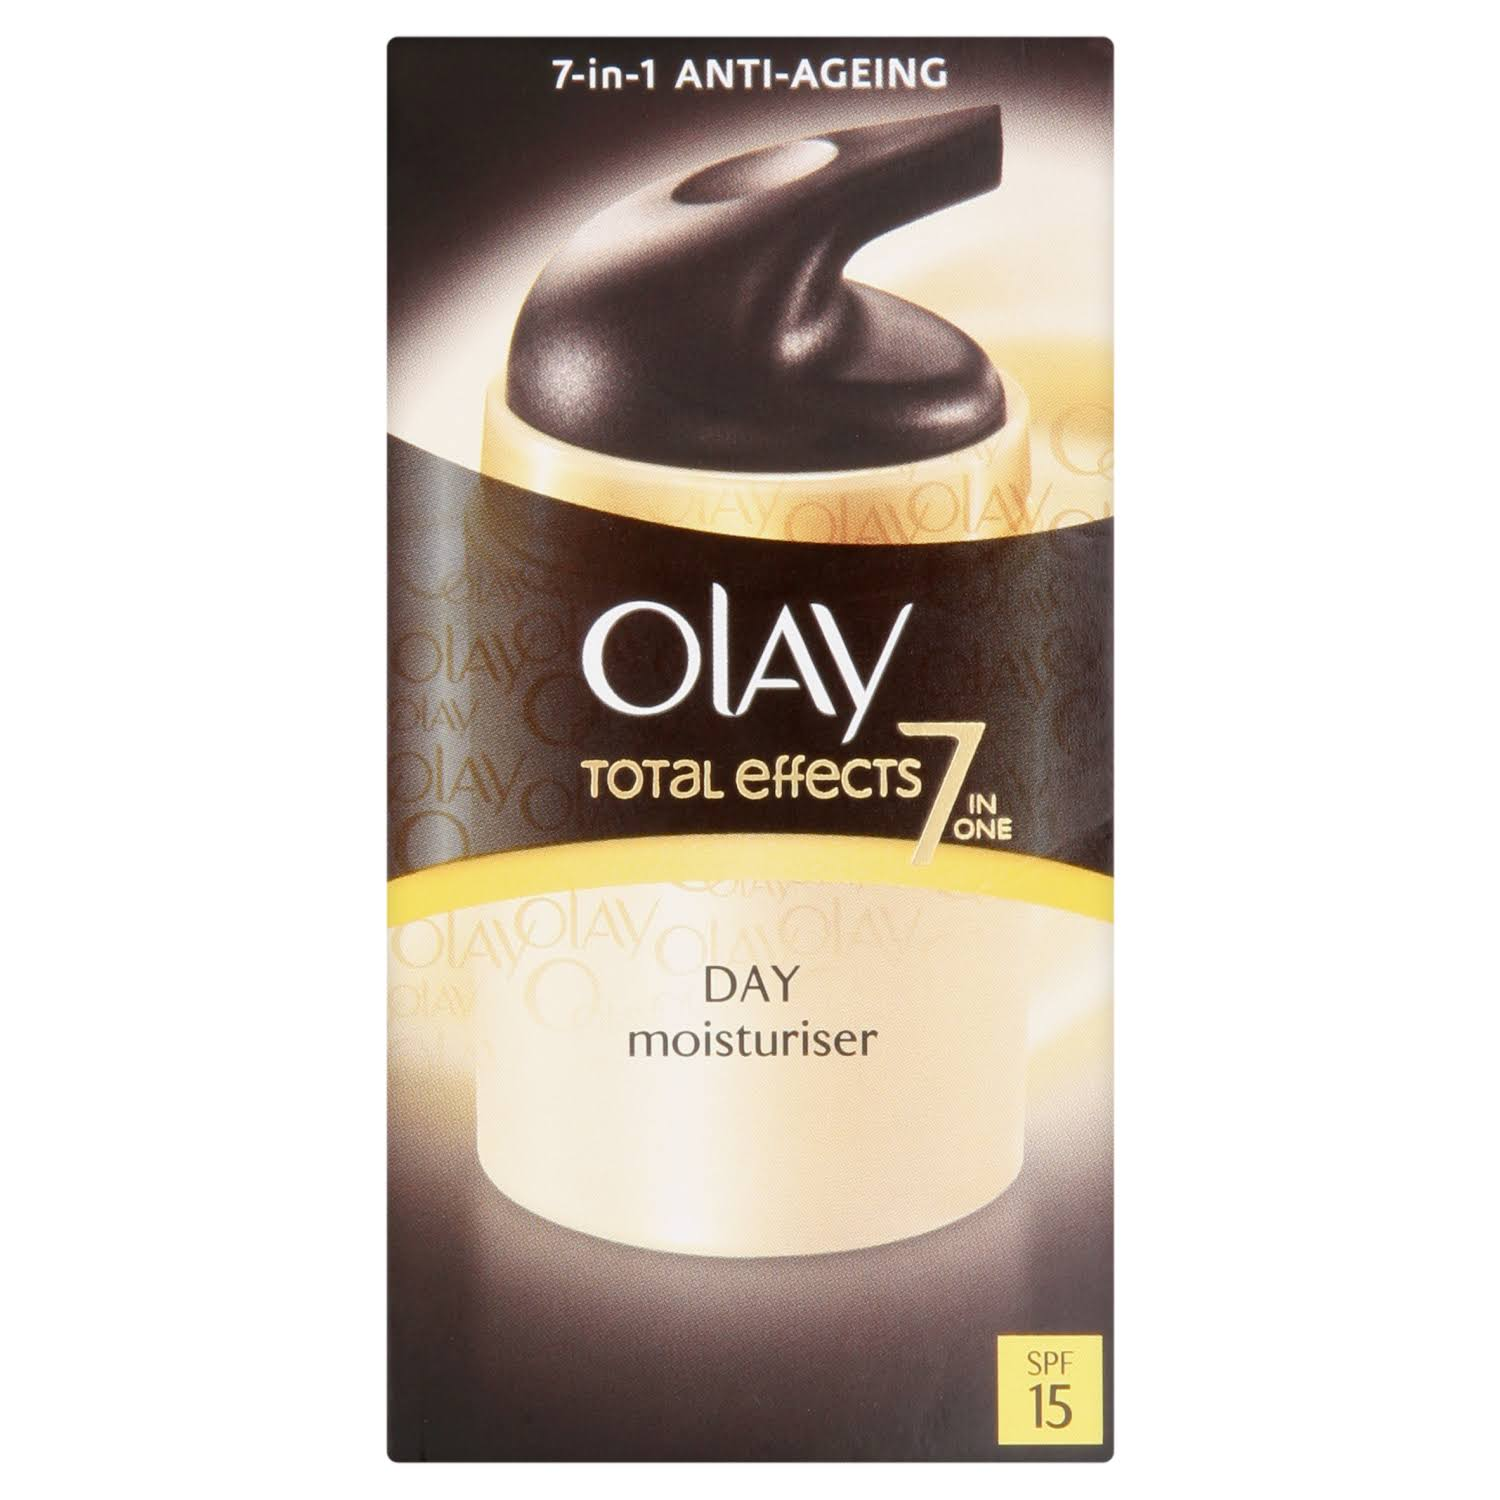 Olay Total Effects Anti Aging Moisturizer - 50ml, SPF 15